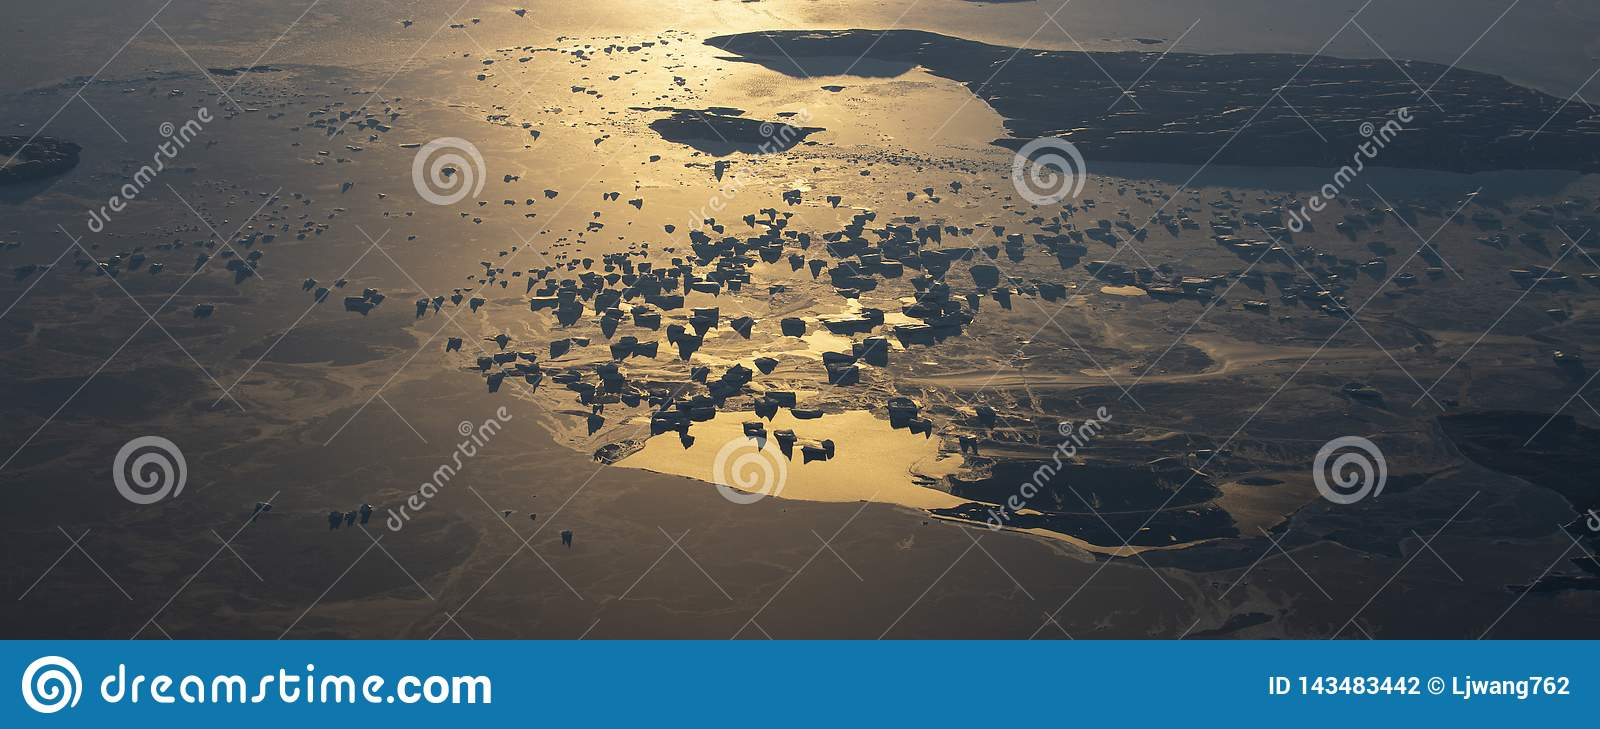 20Take an aerial view of the ice and sunrise over the bering strait.(1)